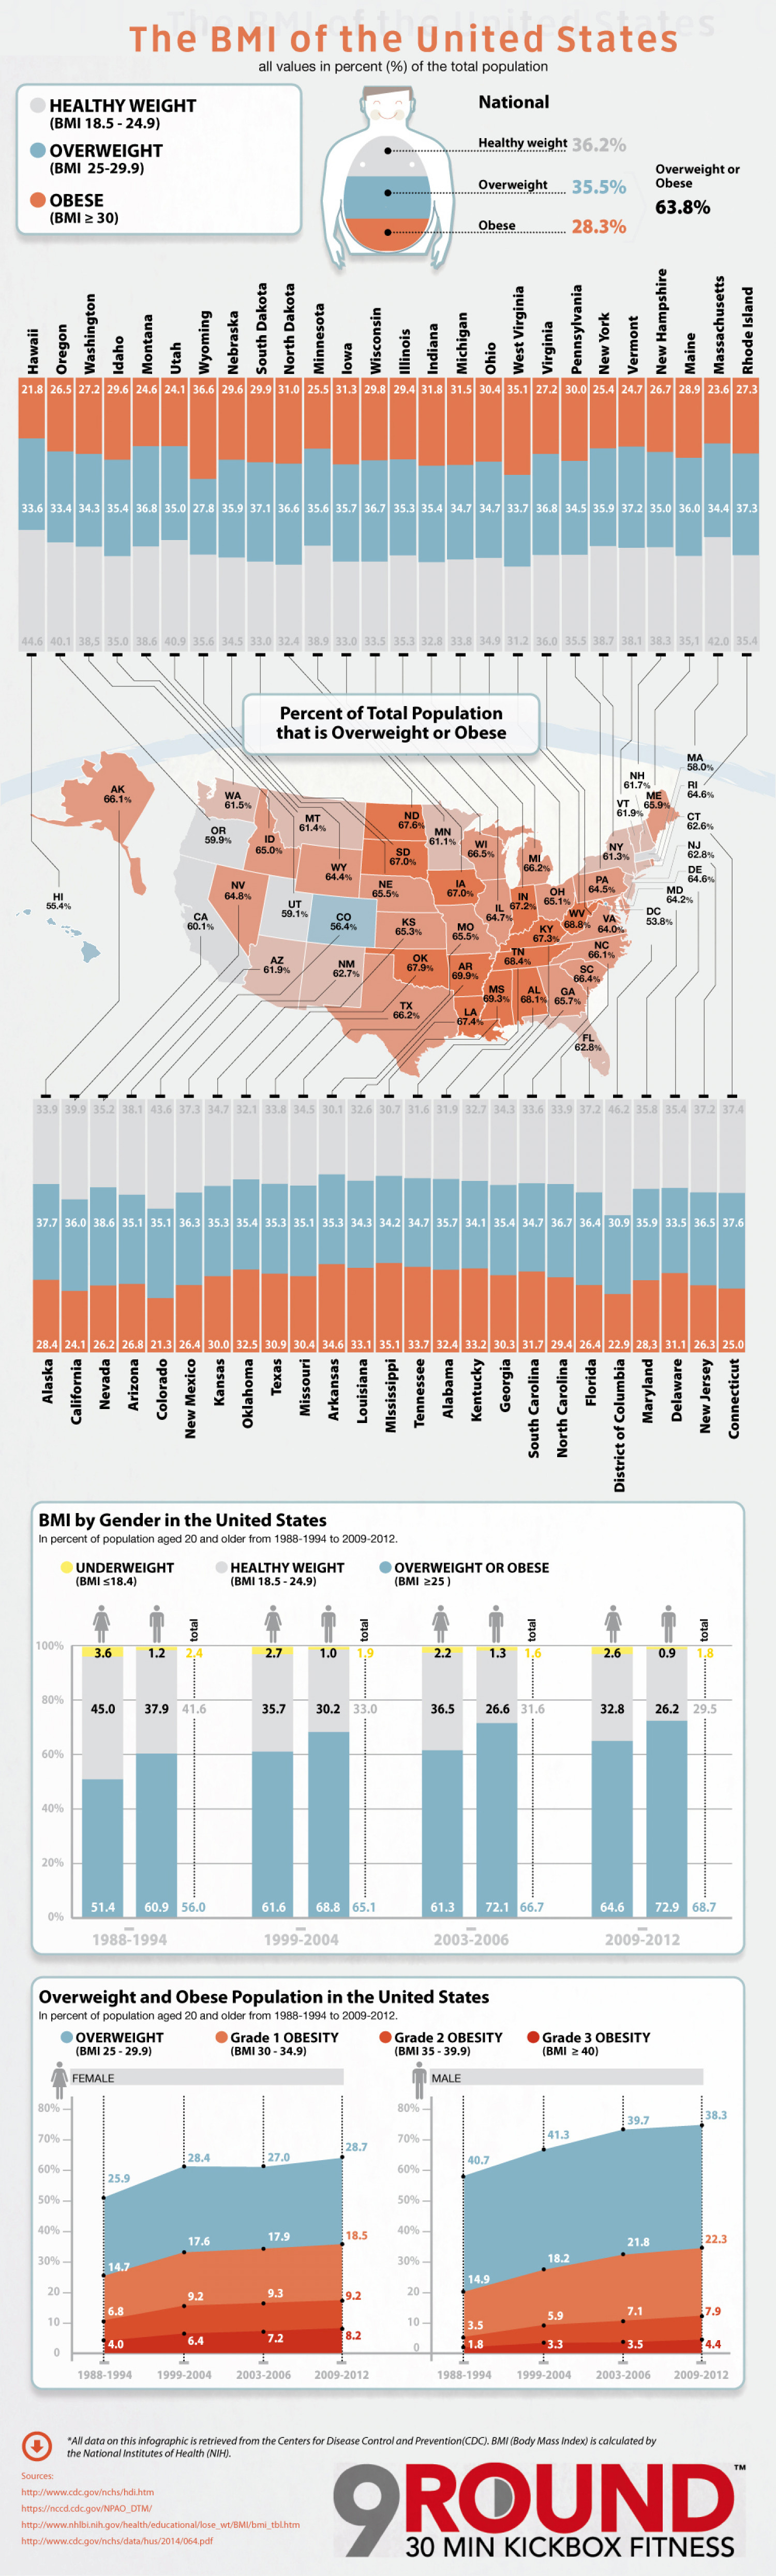 The BMI of the United States Infographic